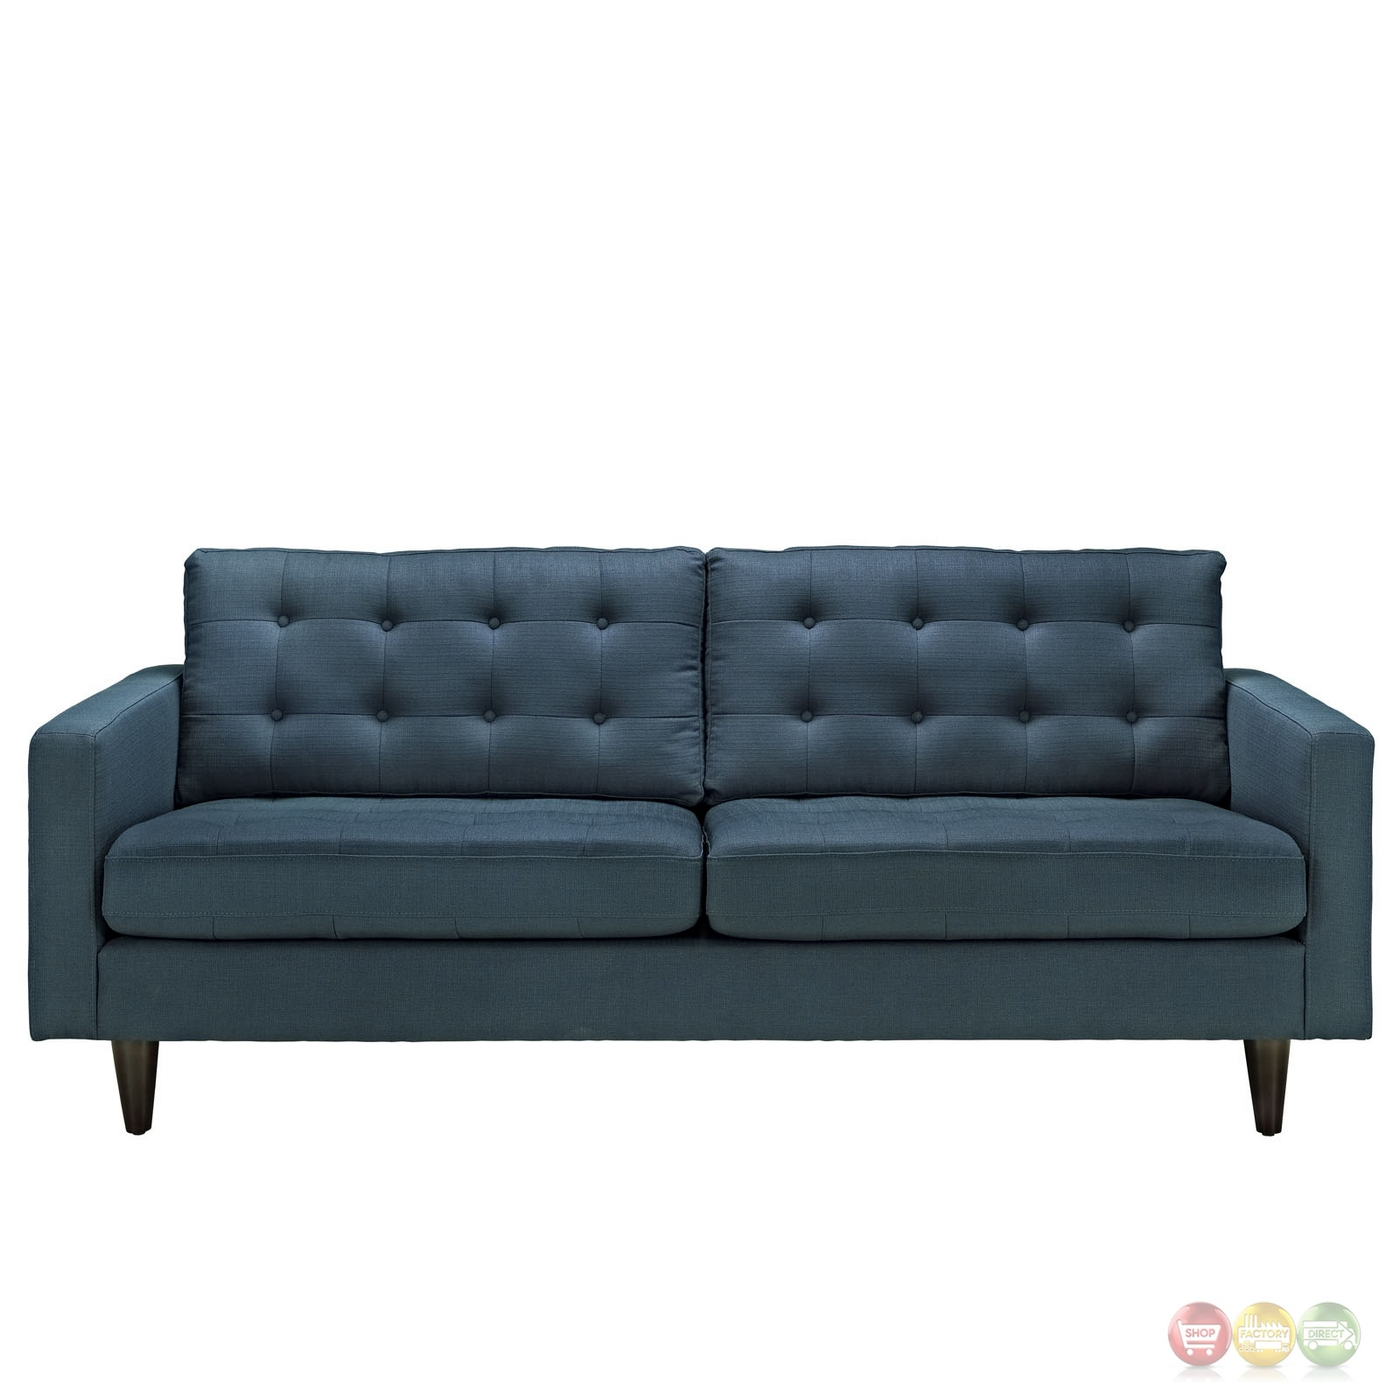 Empress contemporary button tufted upholstered sofa azure for Modern contemporary sofa